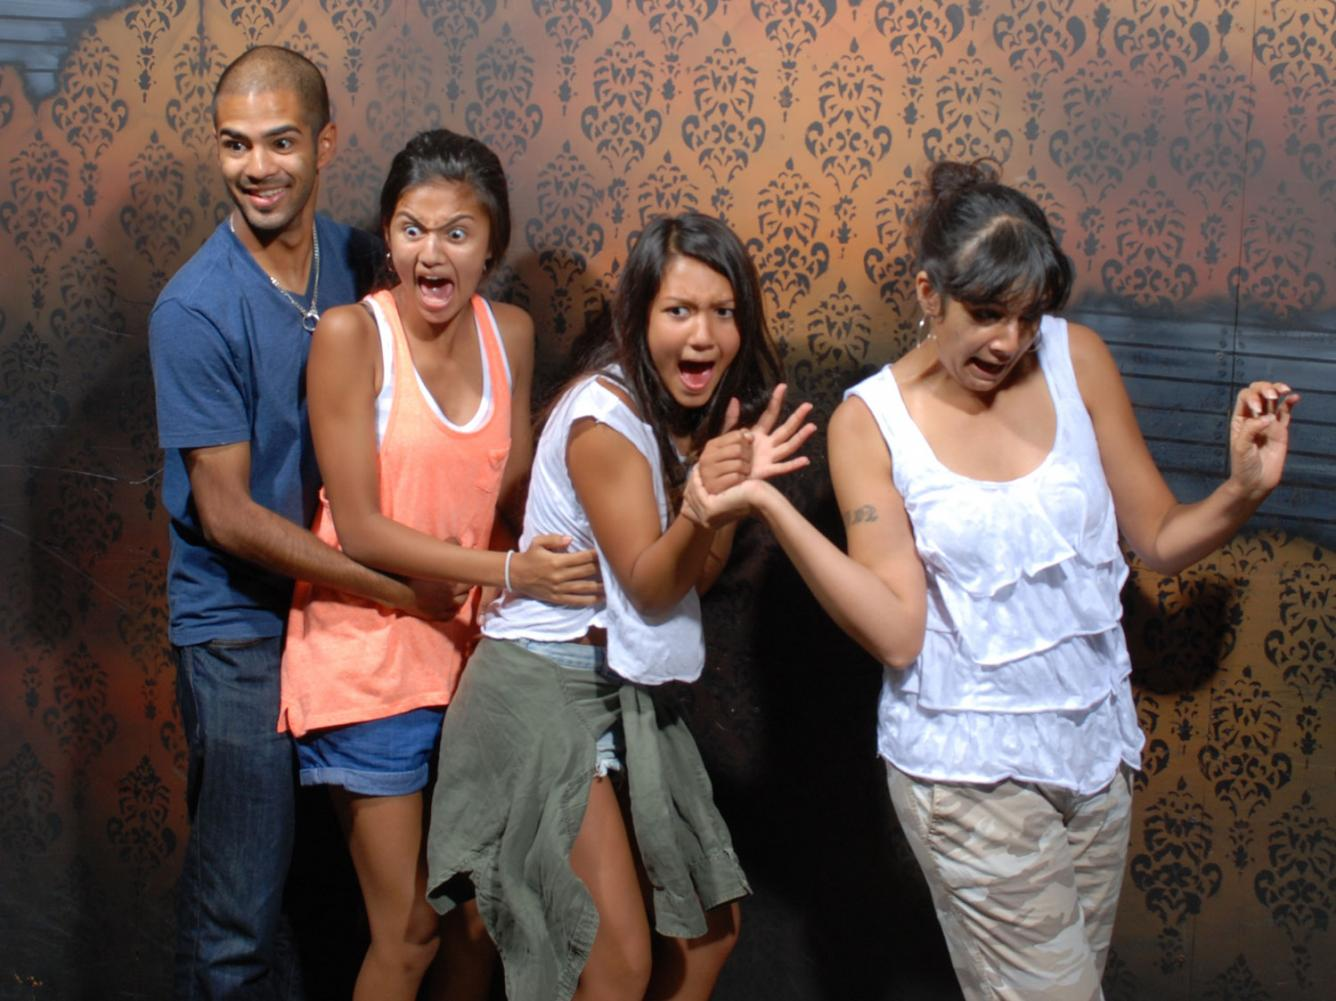 Nightmares Fear Factory Top 40 September 2013 pic0050